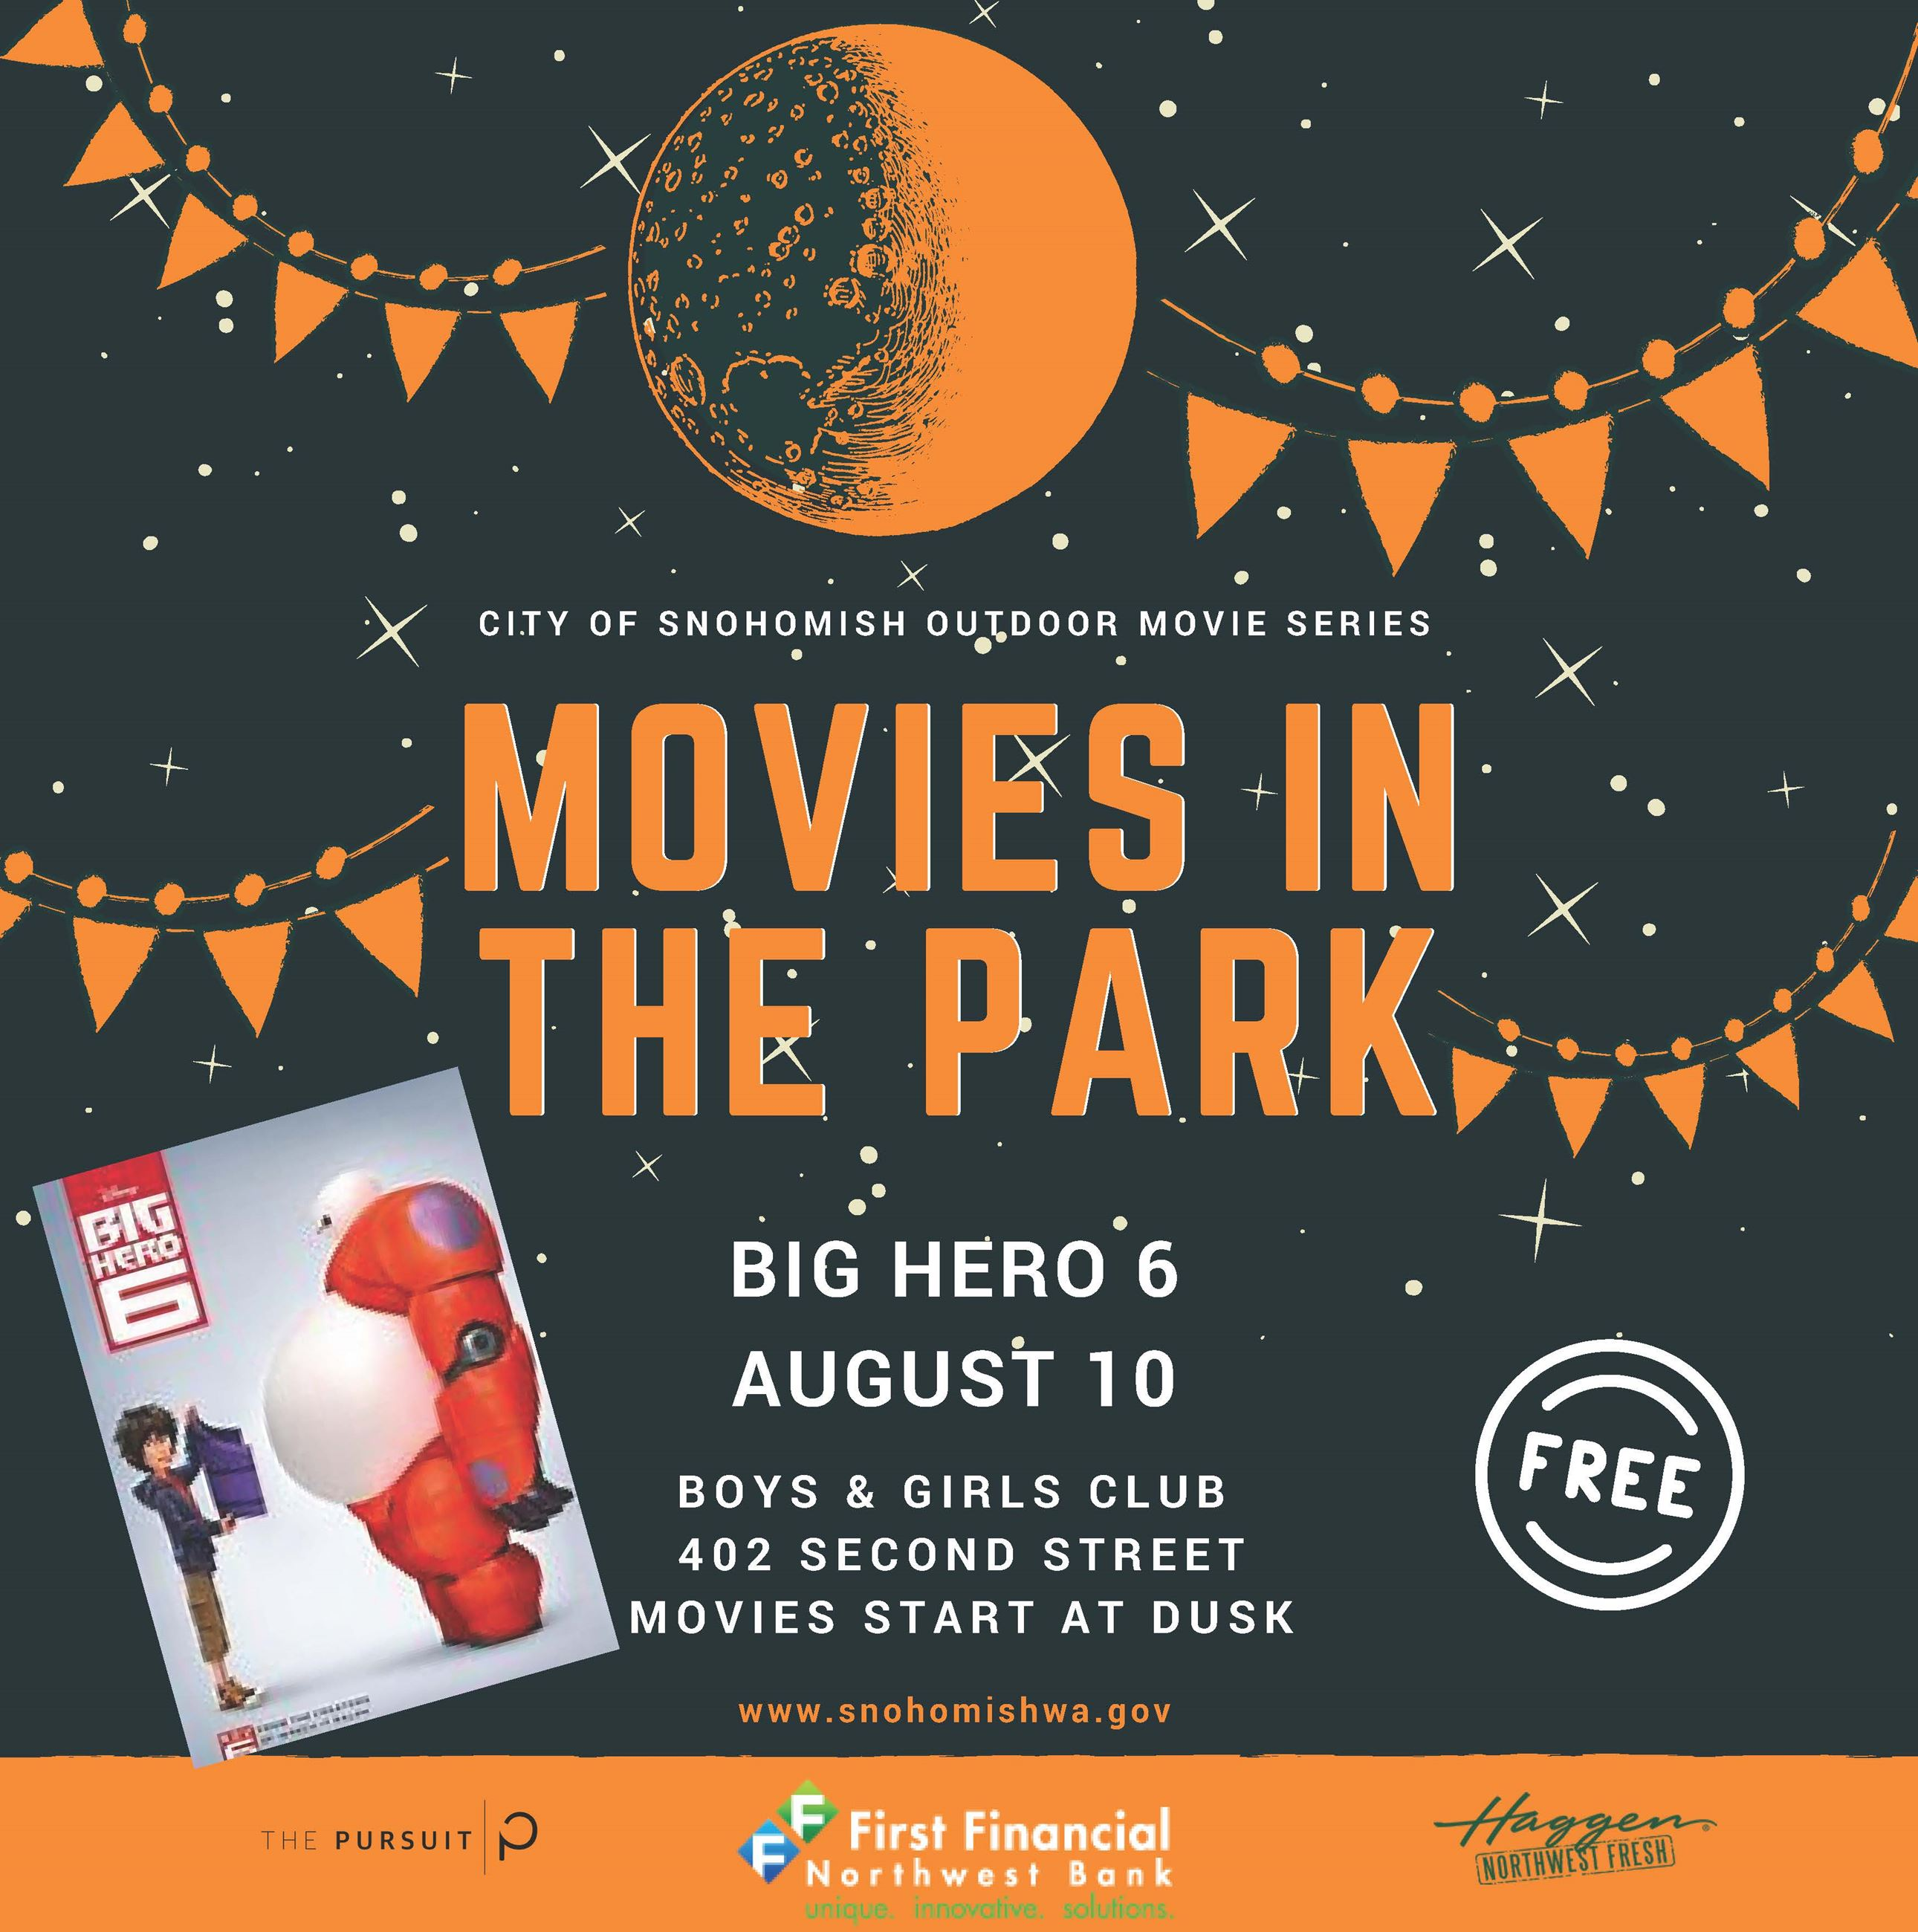 Movies in the Park Big Hero 6